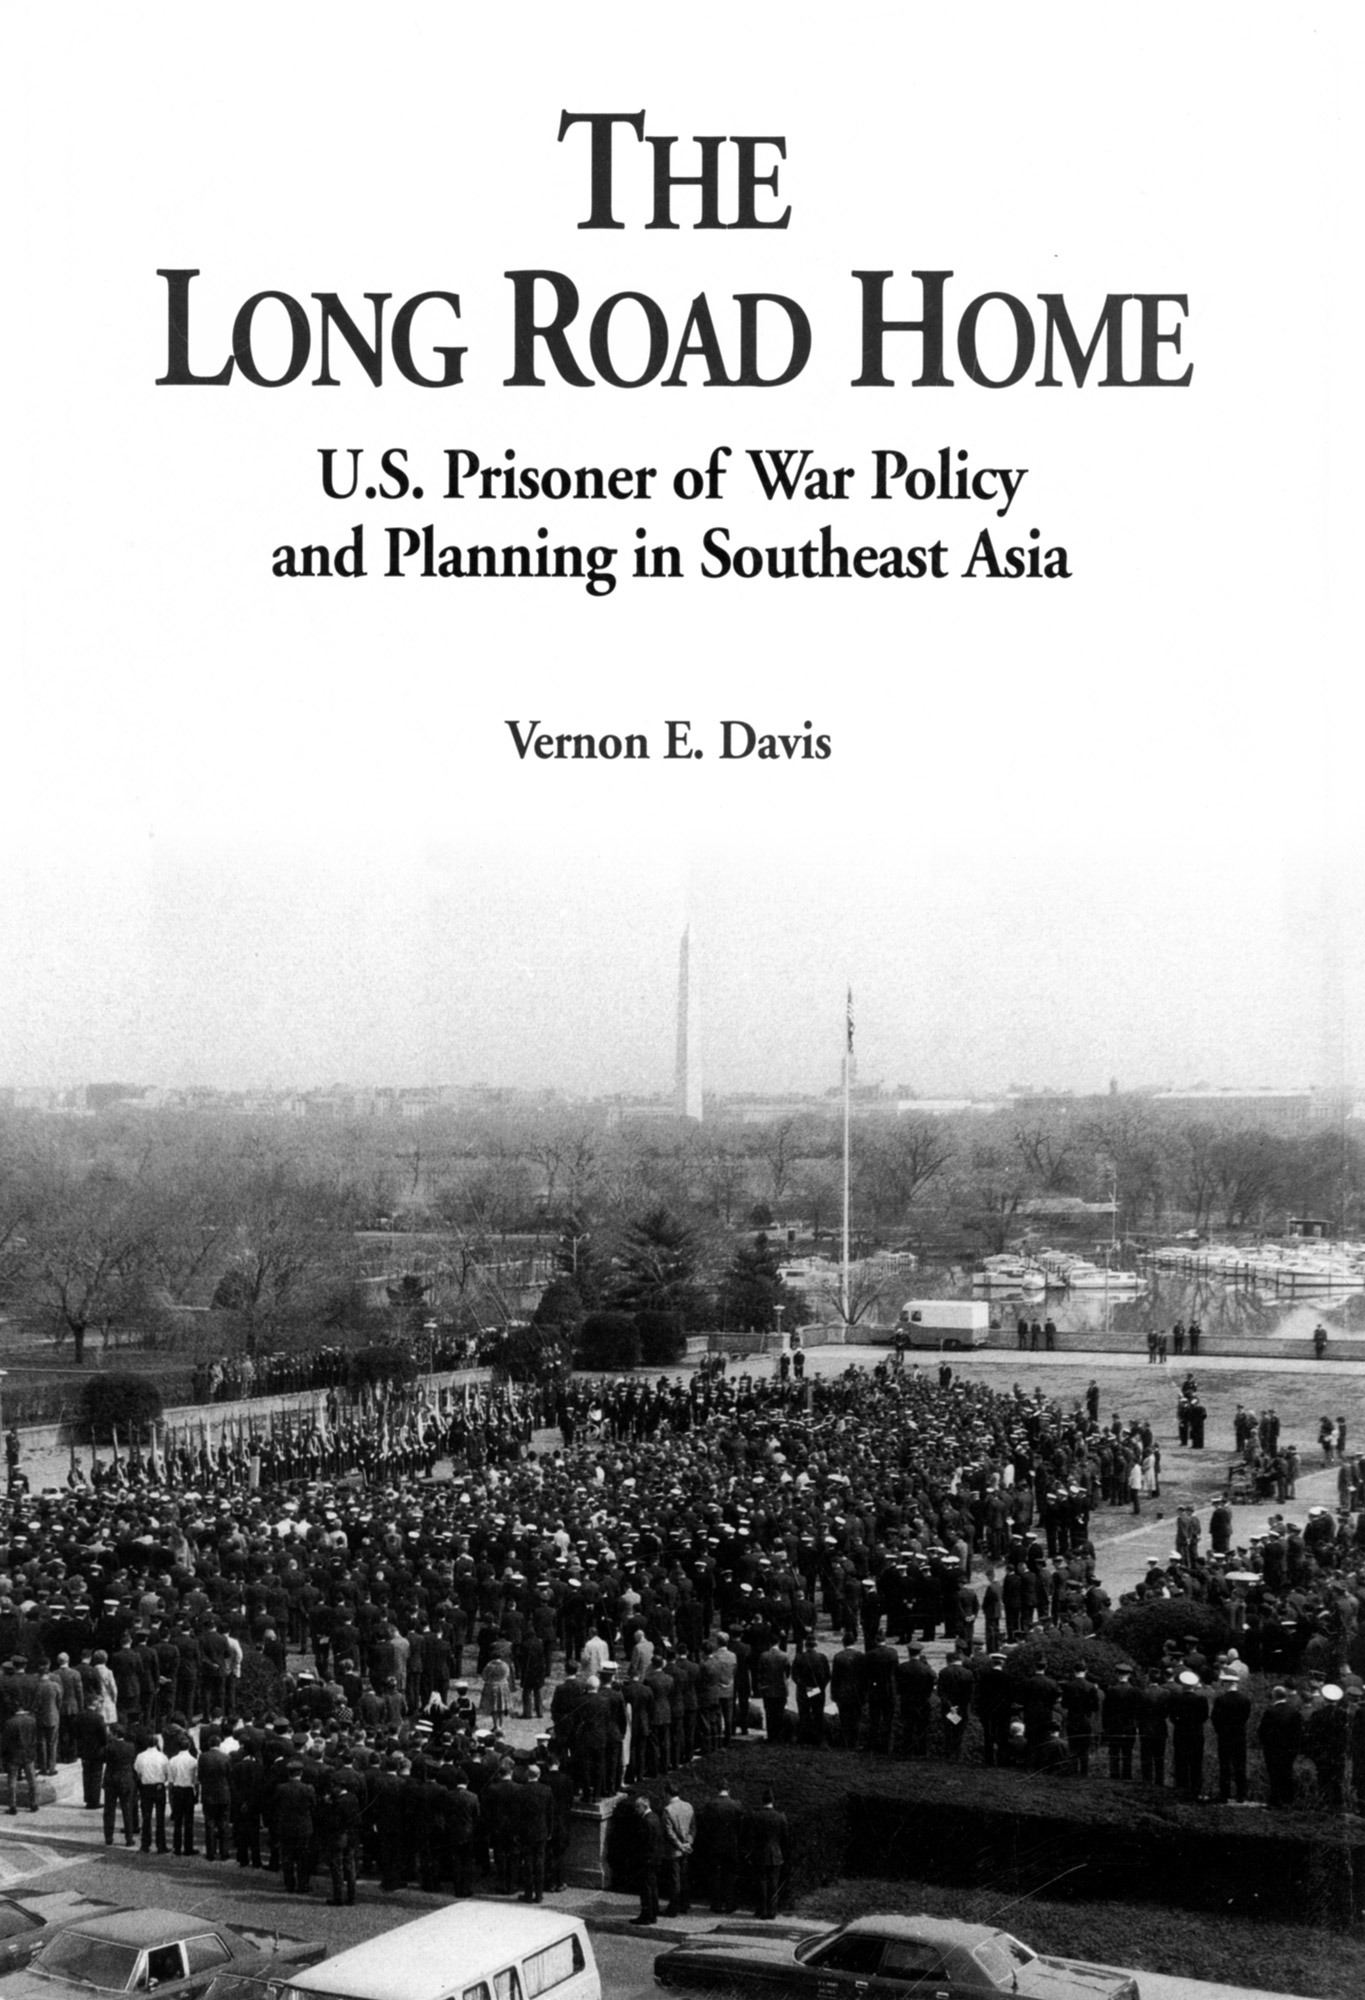 The Long Road Home: U.S. Prisoner of War Policy and Planning in Southeast Asia By: Vernon E. Davis